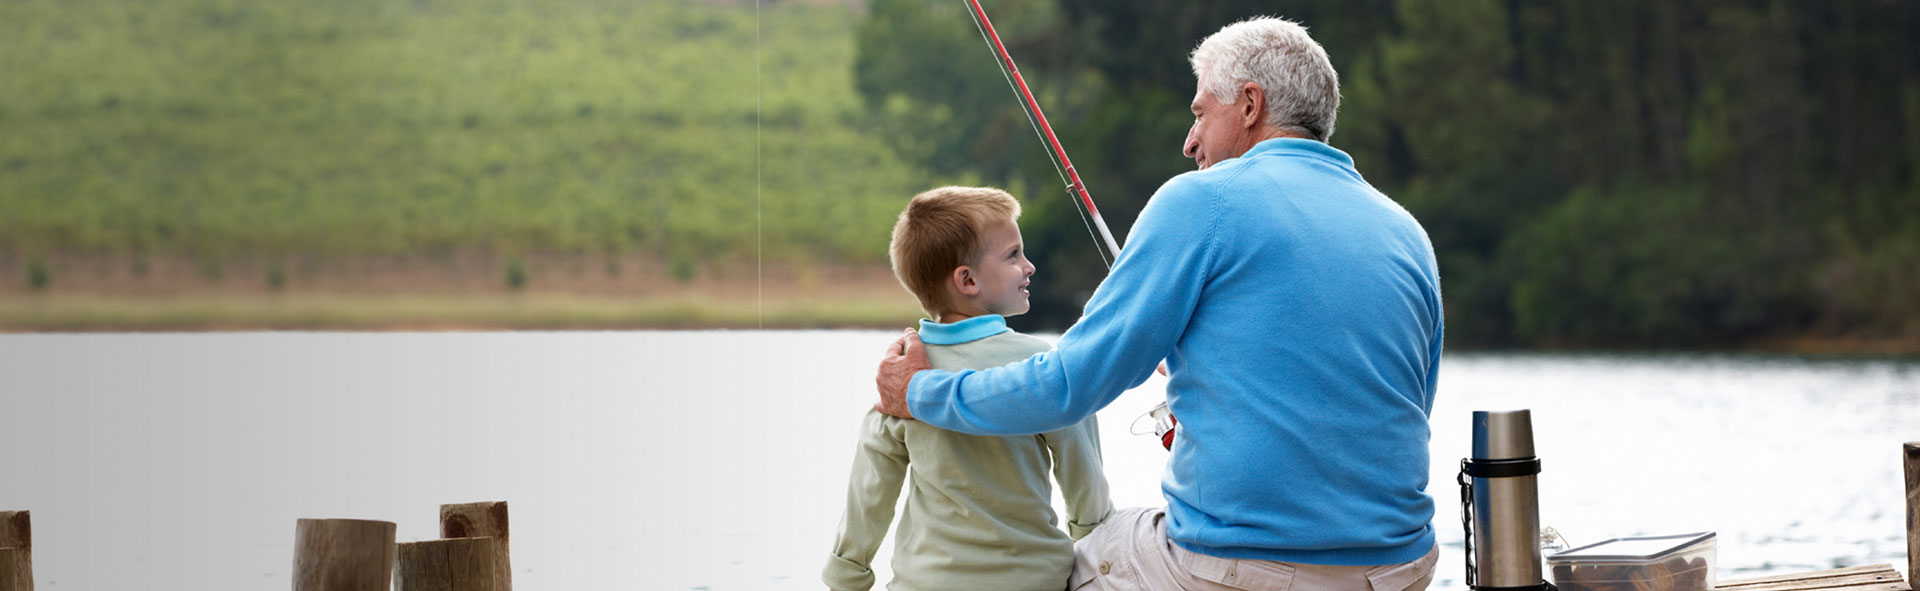 grandfather-grandson-fishing